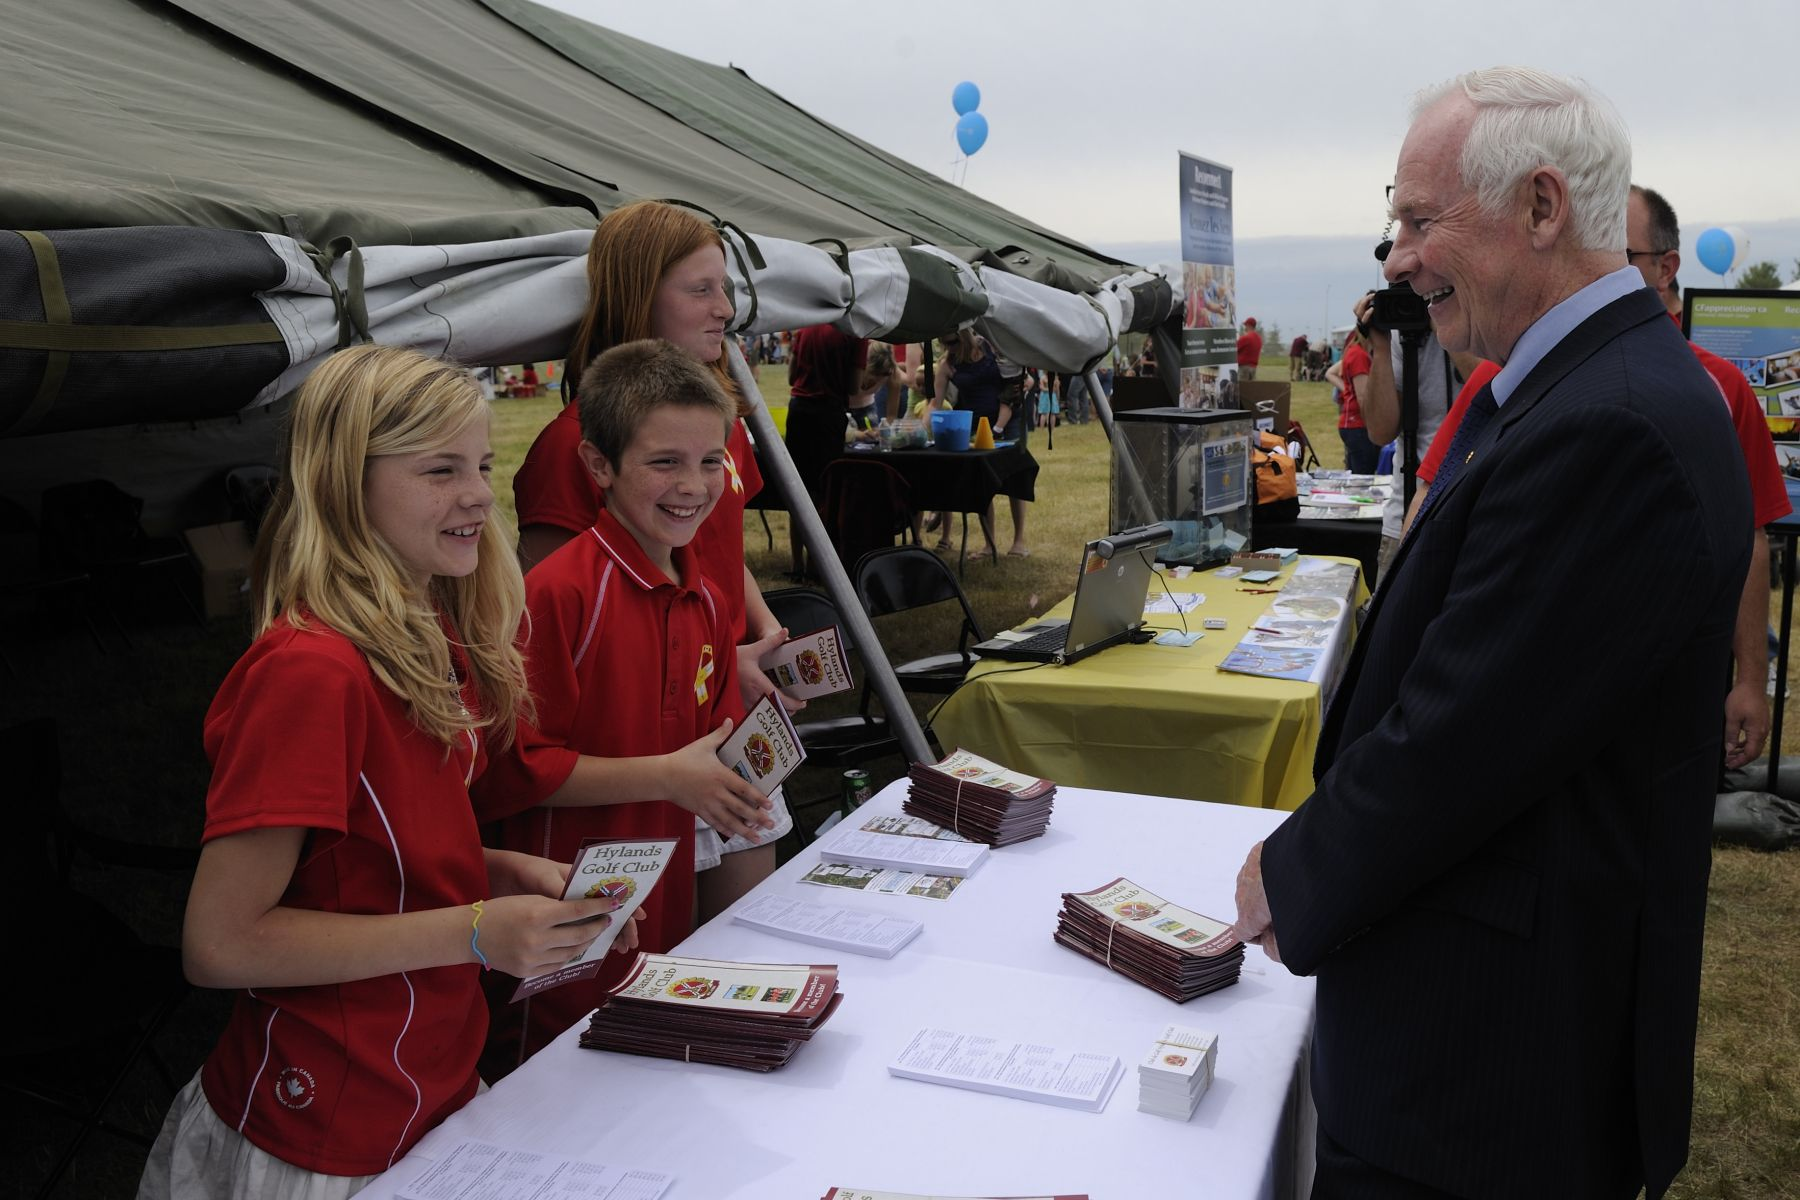 His Excellency visited the kiosks installed on the grounds of the former site of the Canadian Forces Base Uplands in Canada's Capital Region. He took time to speak with youth who volunteered their time for this special event.